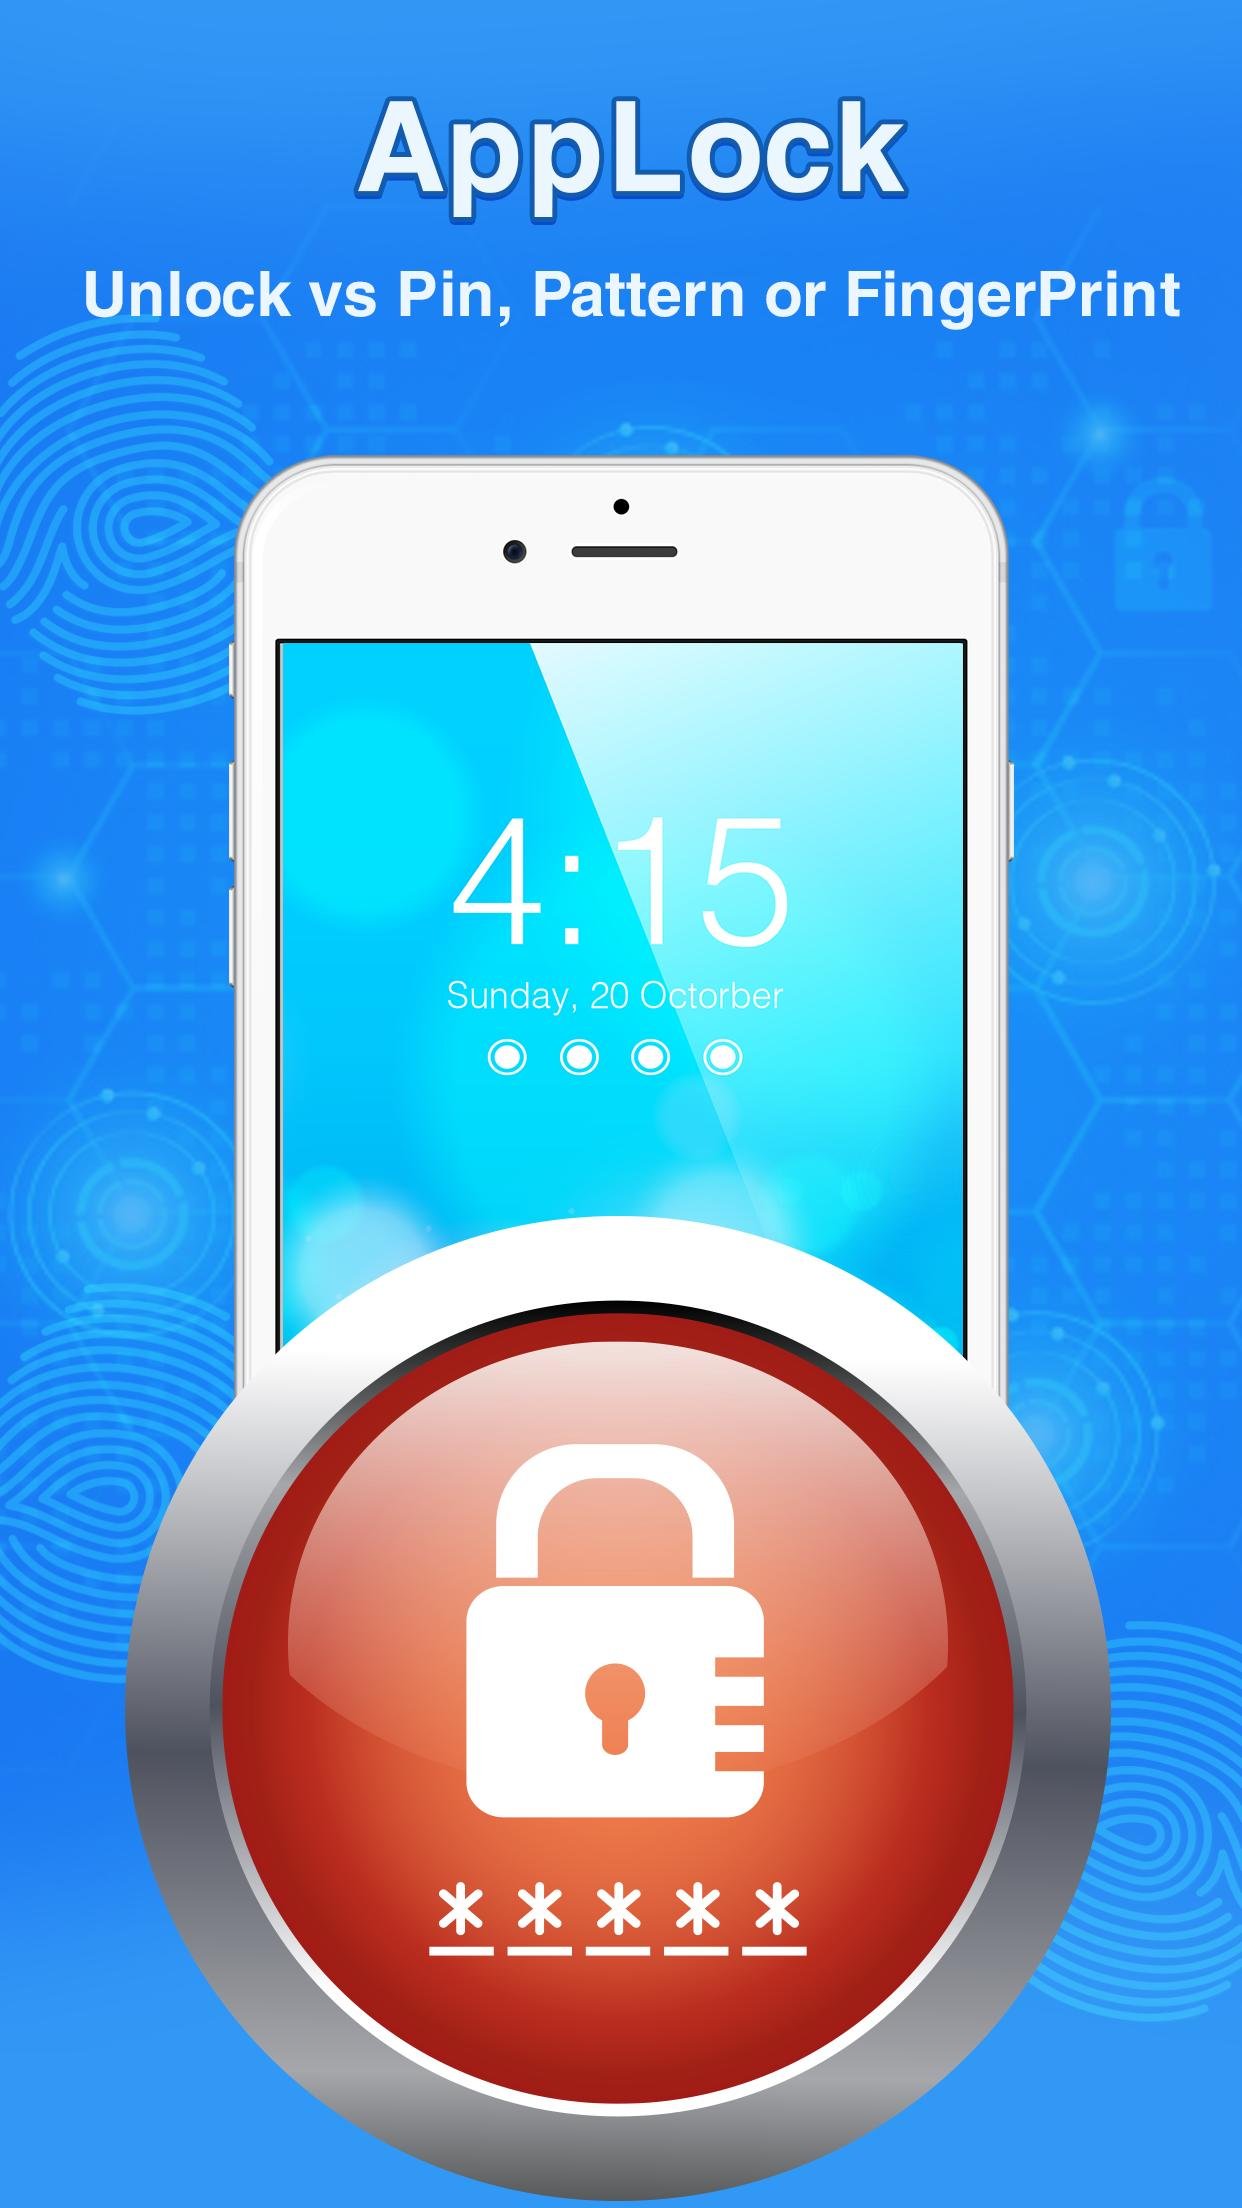 How To Unlock Applock